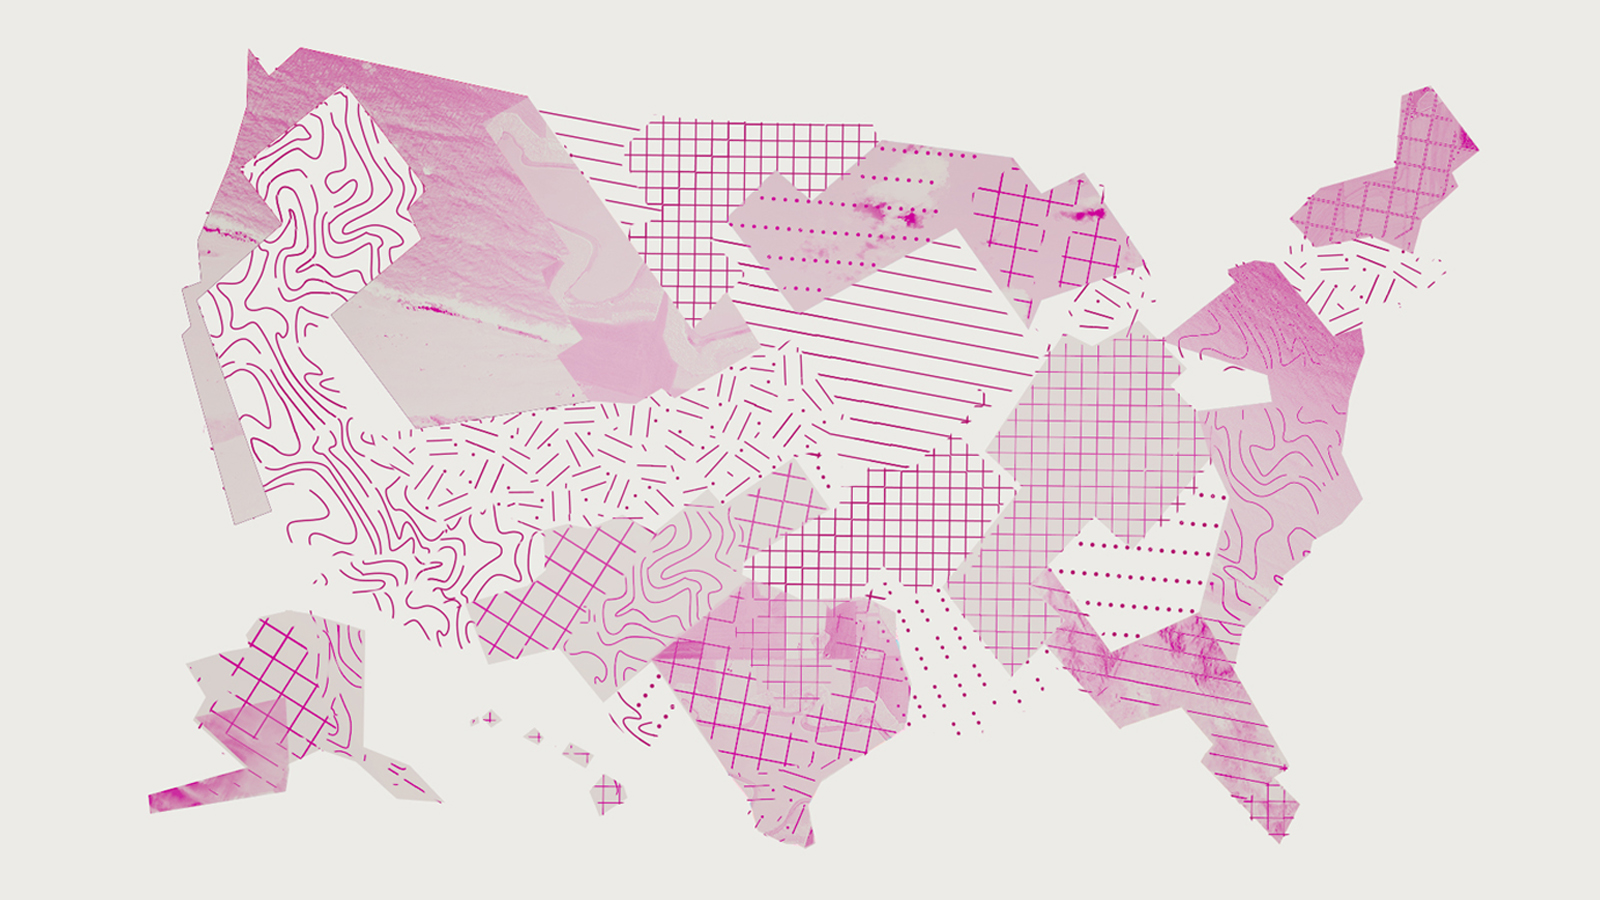 The atlas of redistricting fivethirtyeight